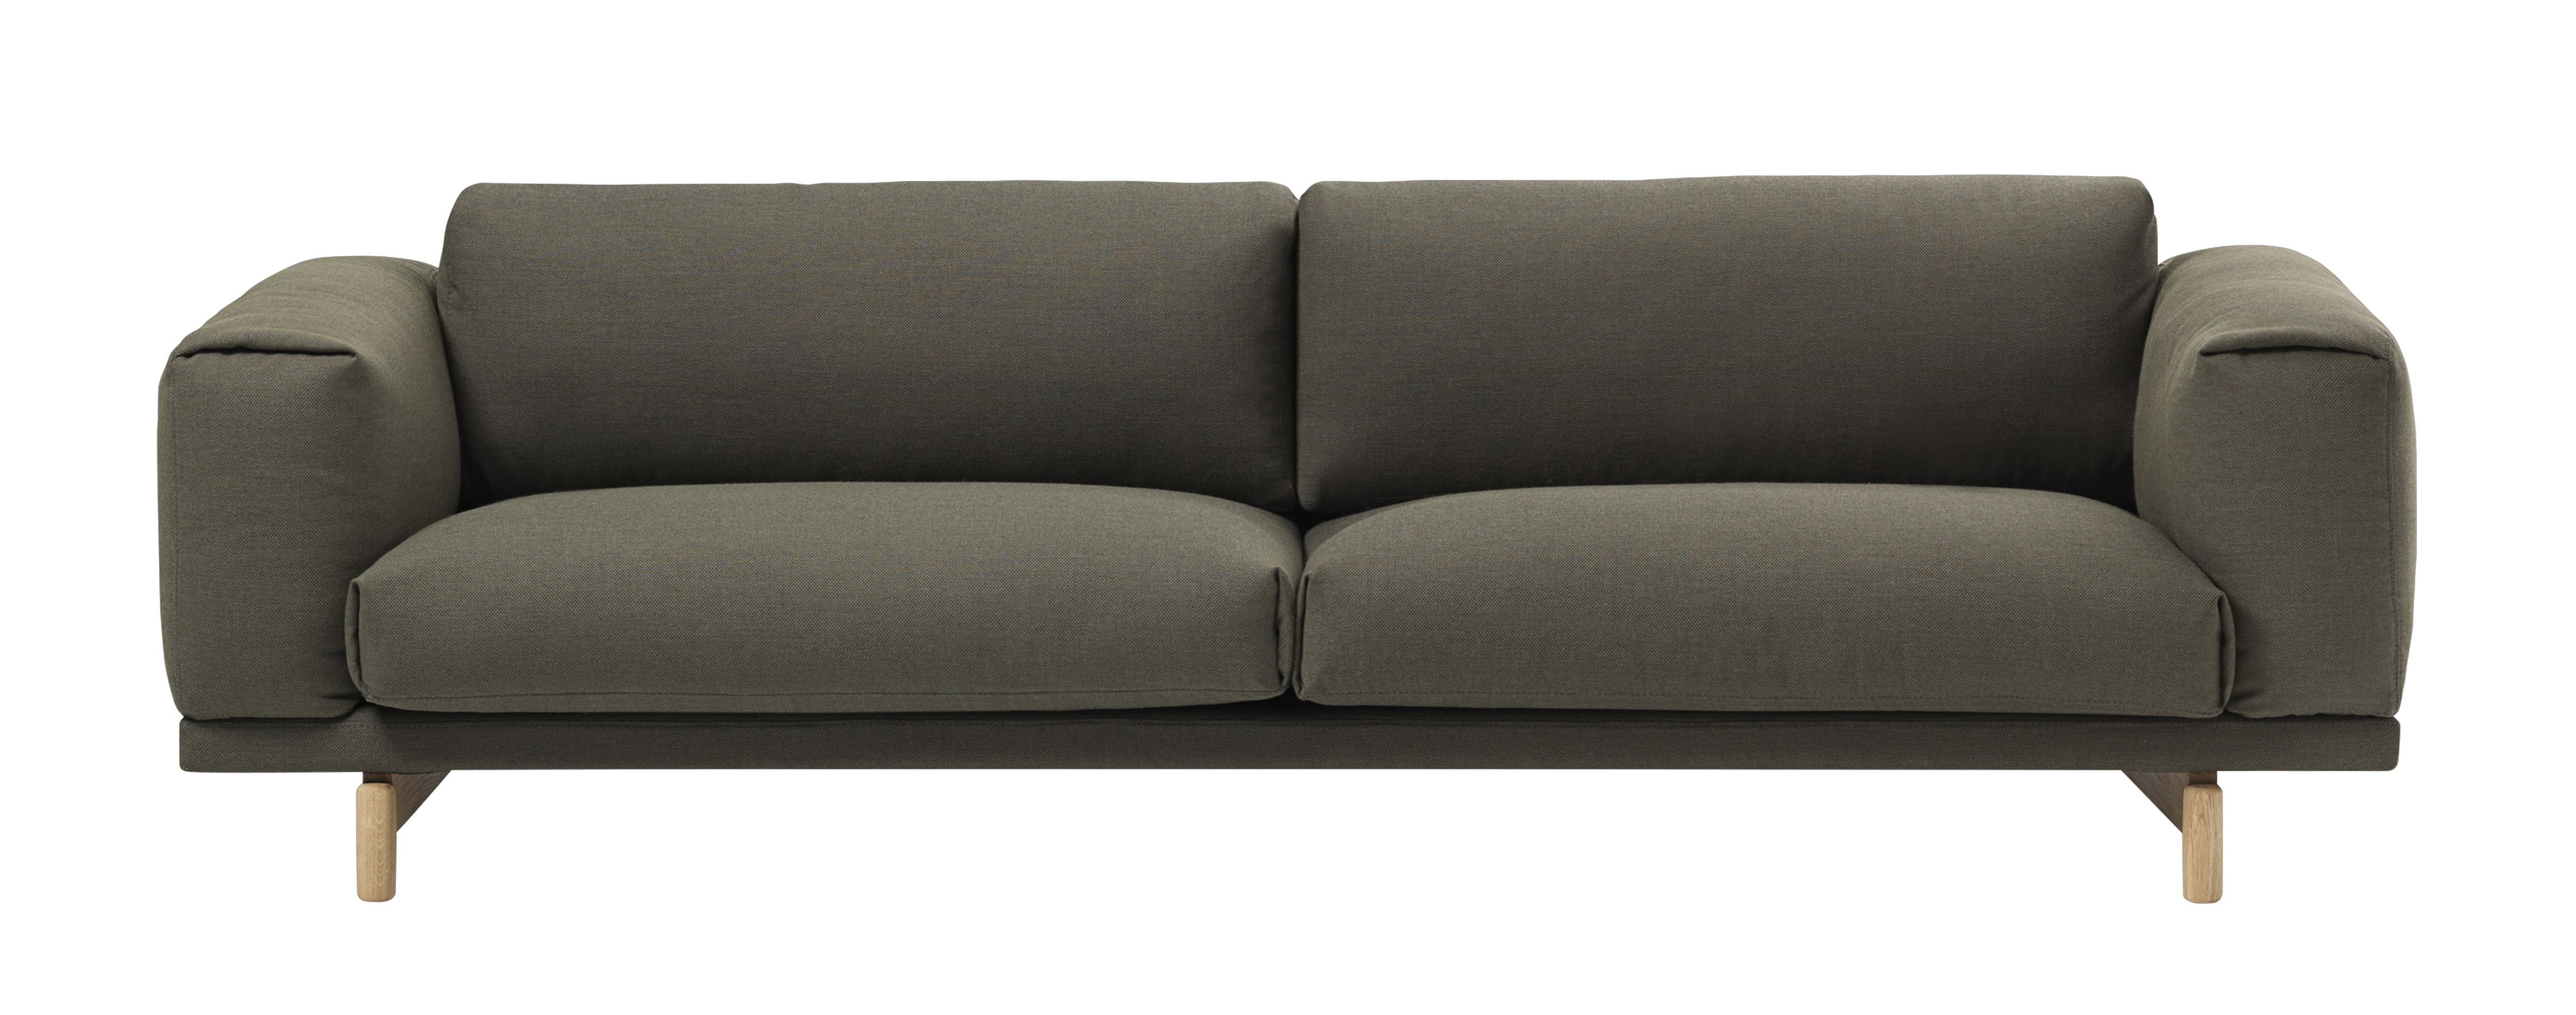 muuto rest 3 seater sofa gr shop canada. Black Bedroom Furniture Sets. Home Design Ideas